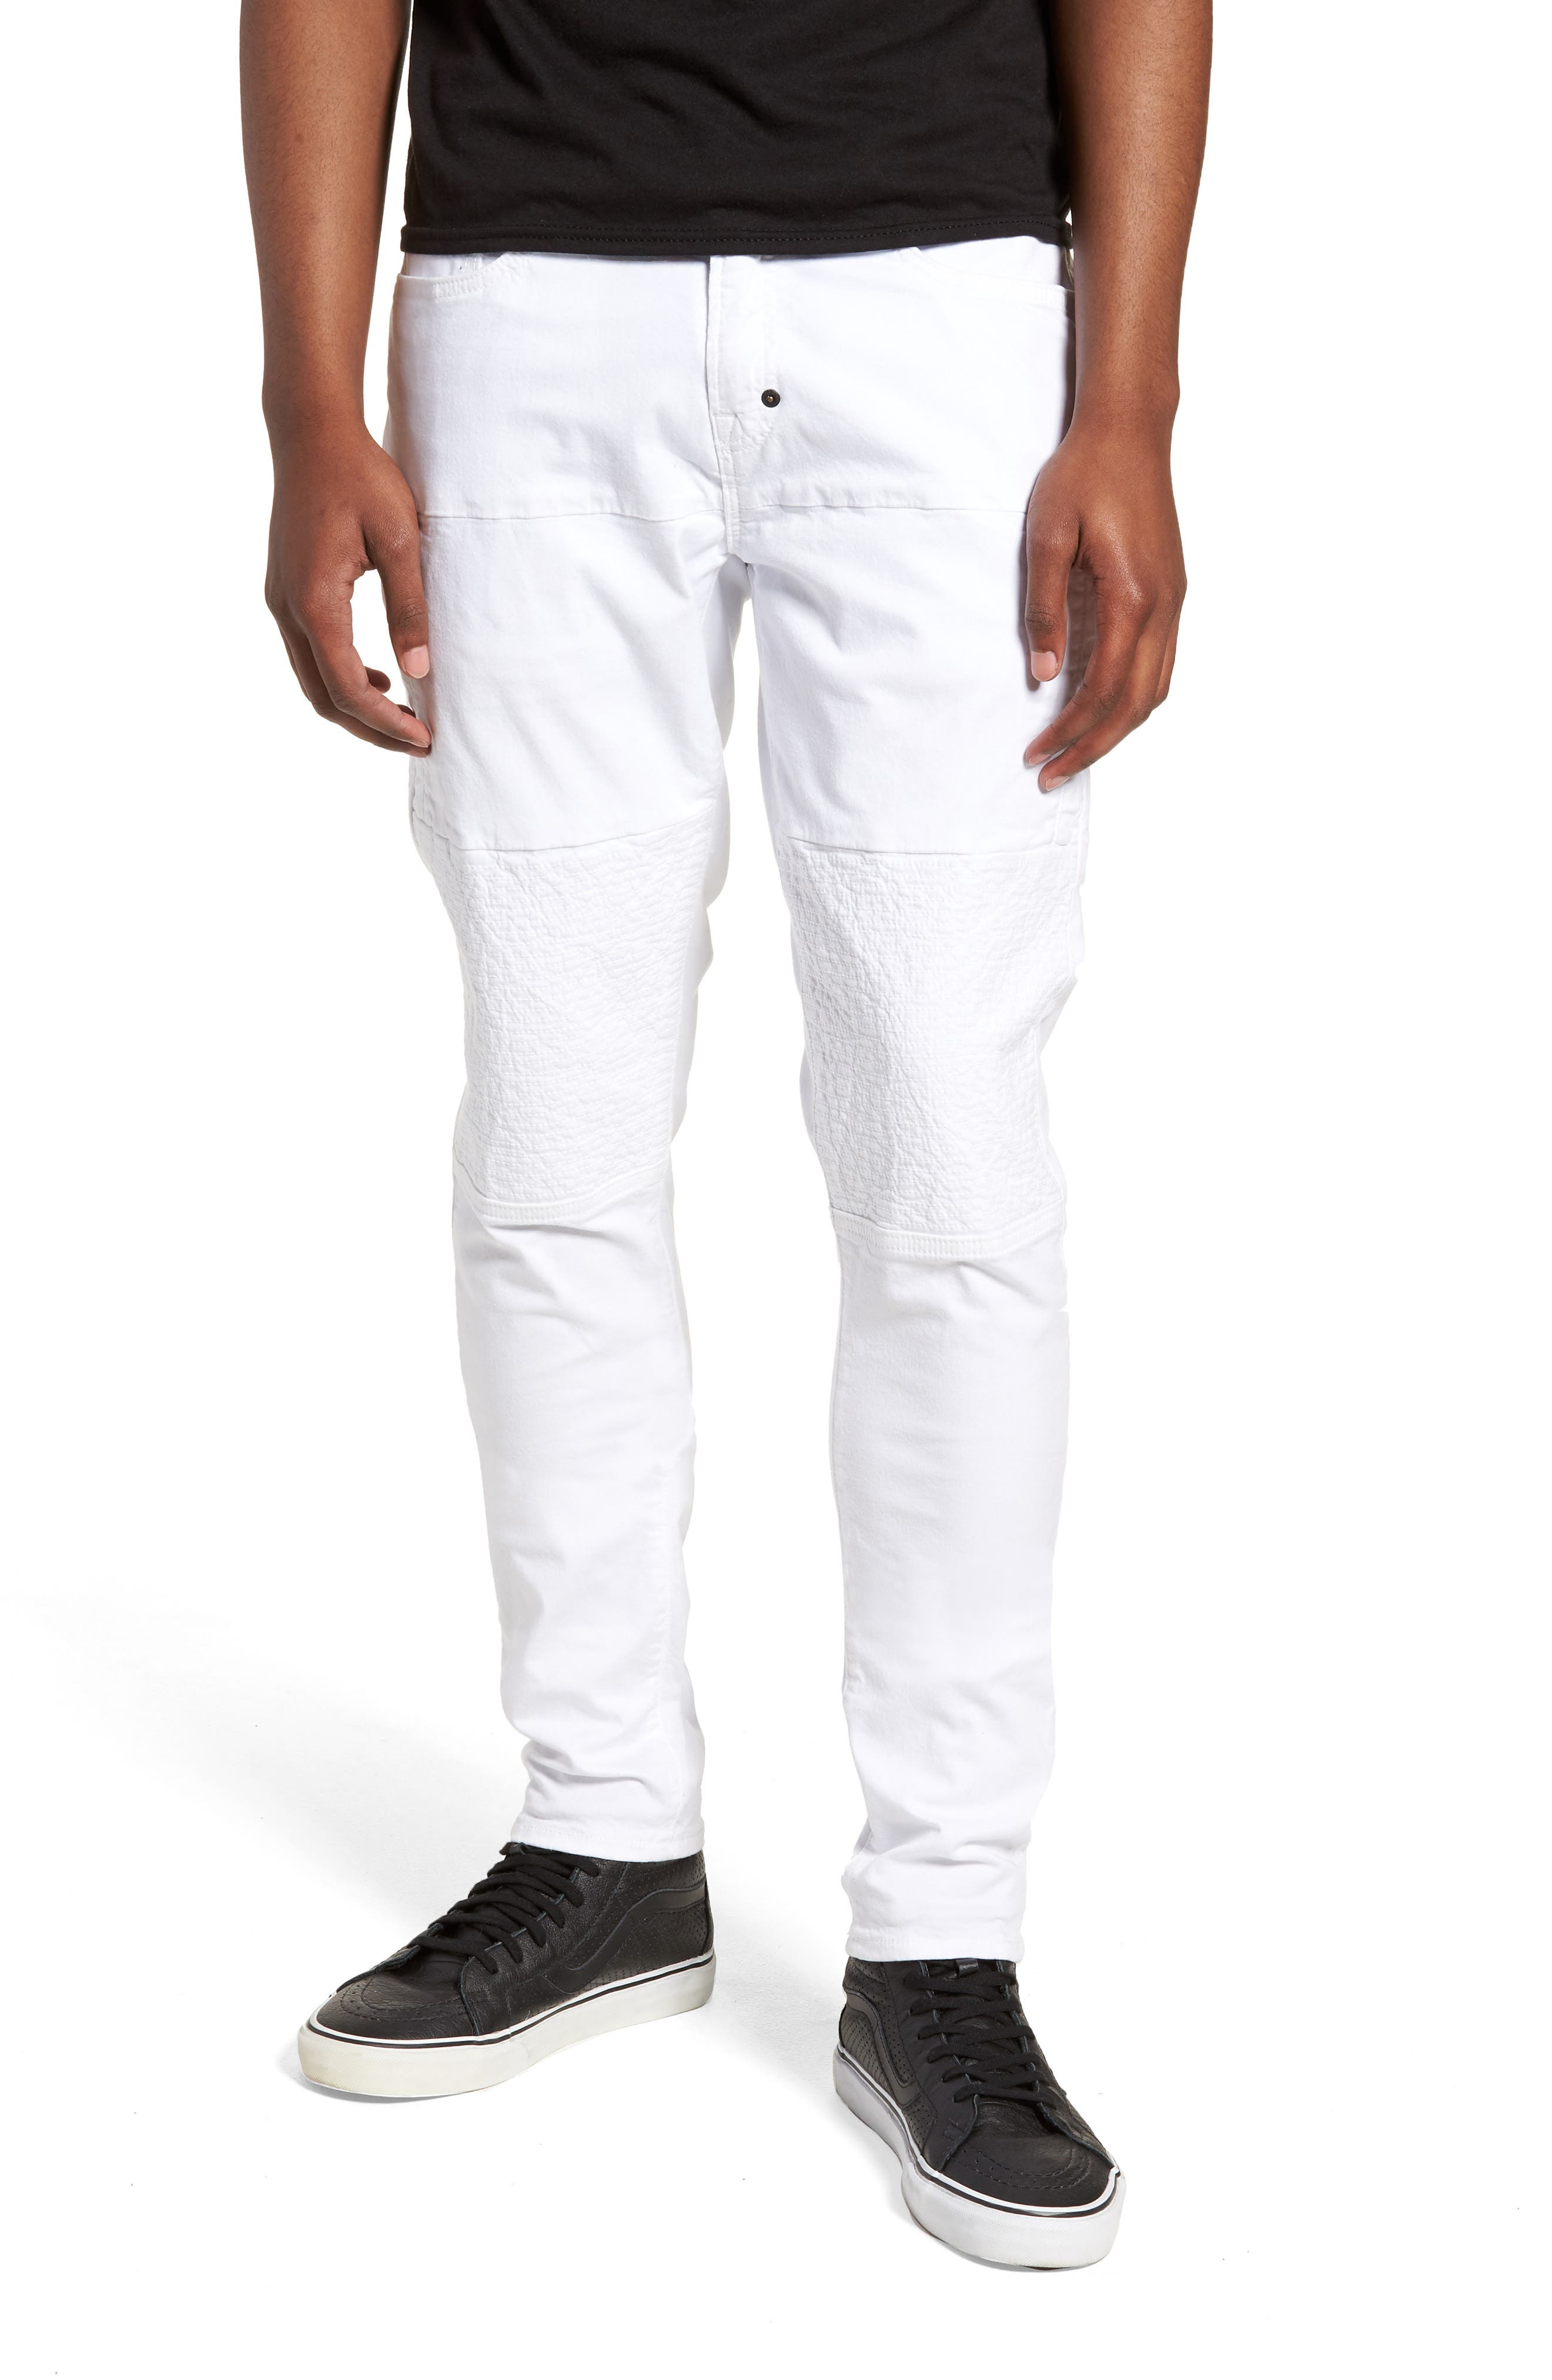 Windsor Slim Fit Jeans,                             Main thumbnail 1, color,                             SKELETON